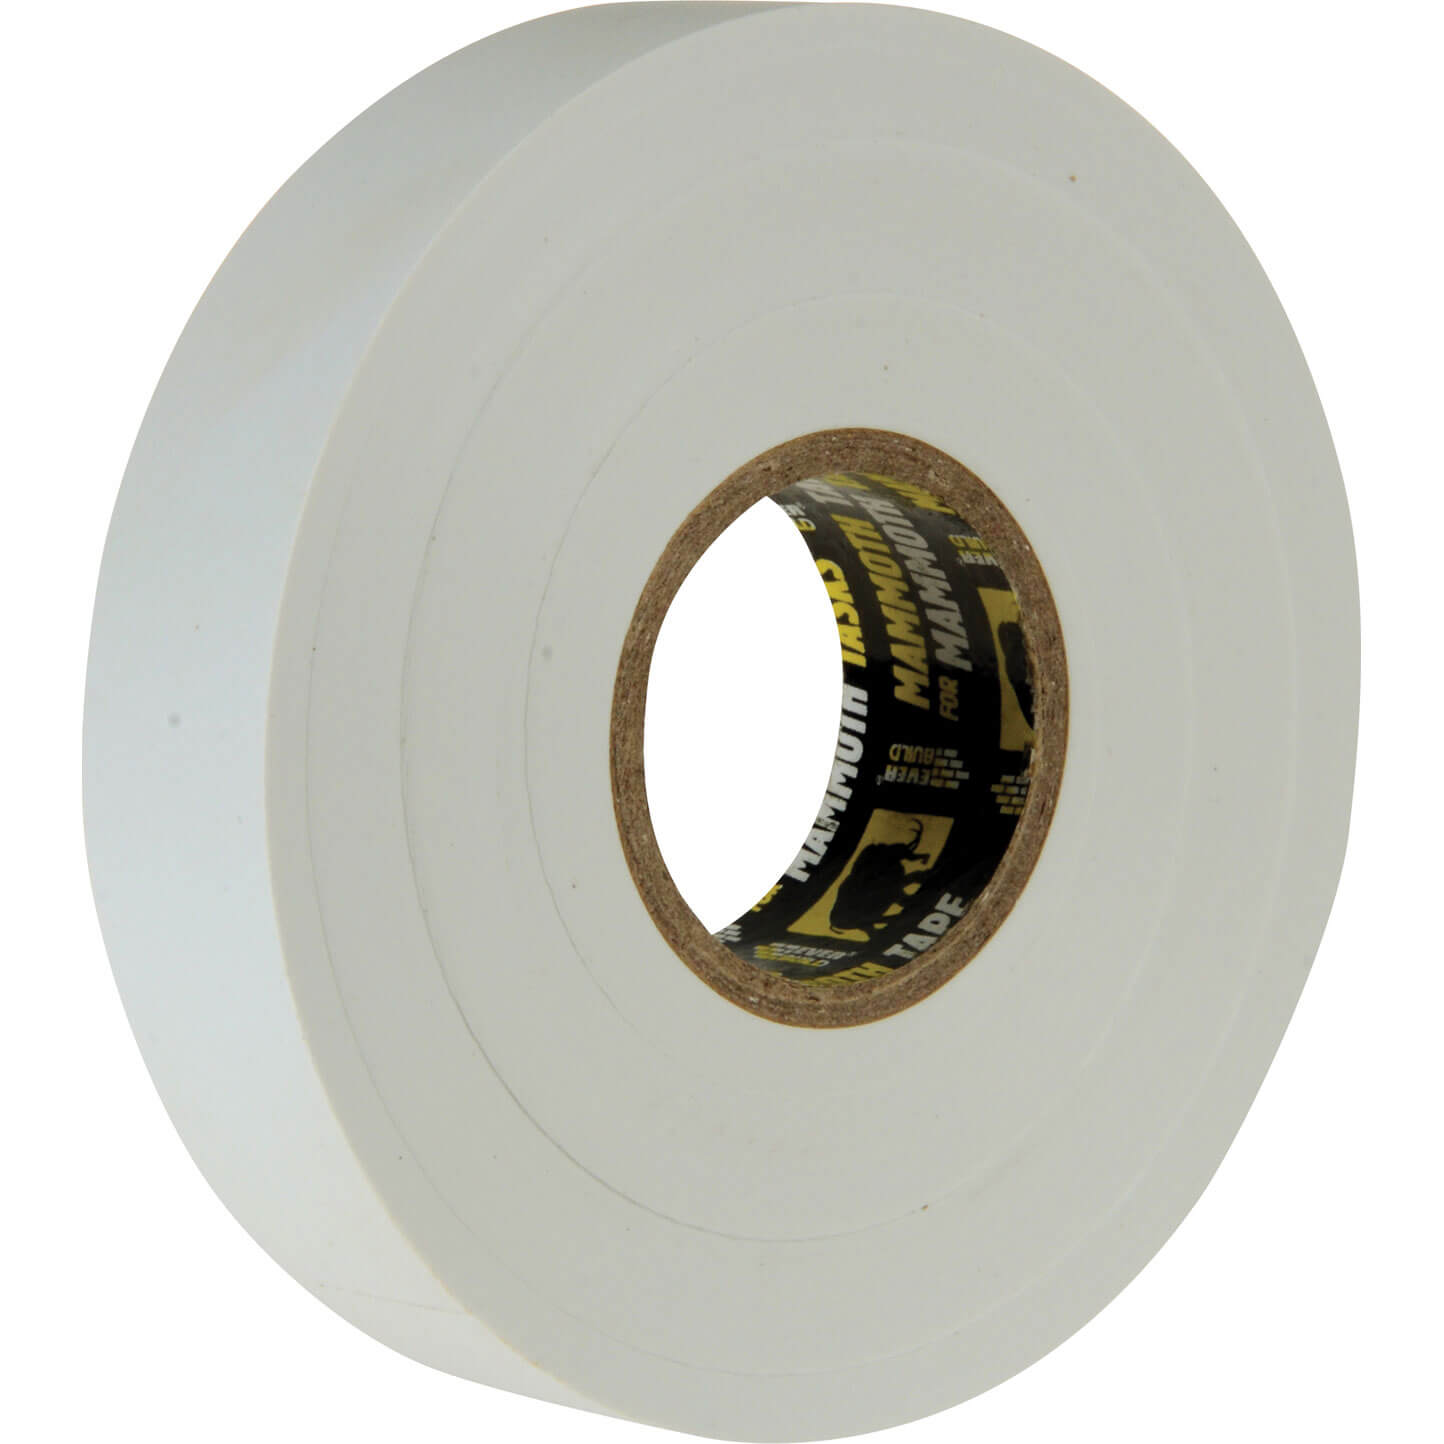 Image of Everbuild Electrical Insulation Tape White 19mm 33m